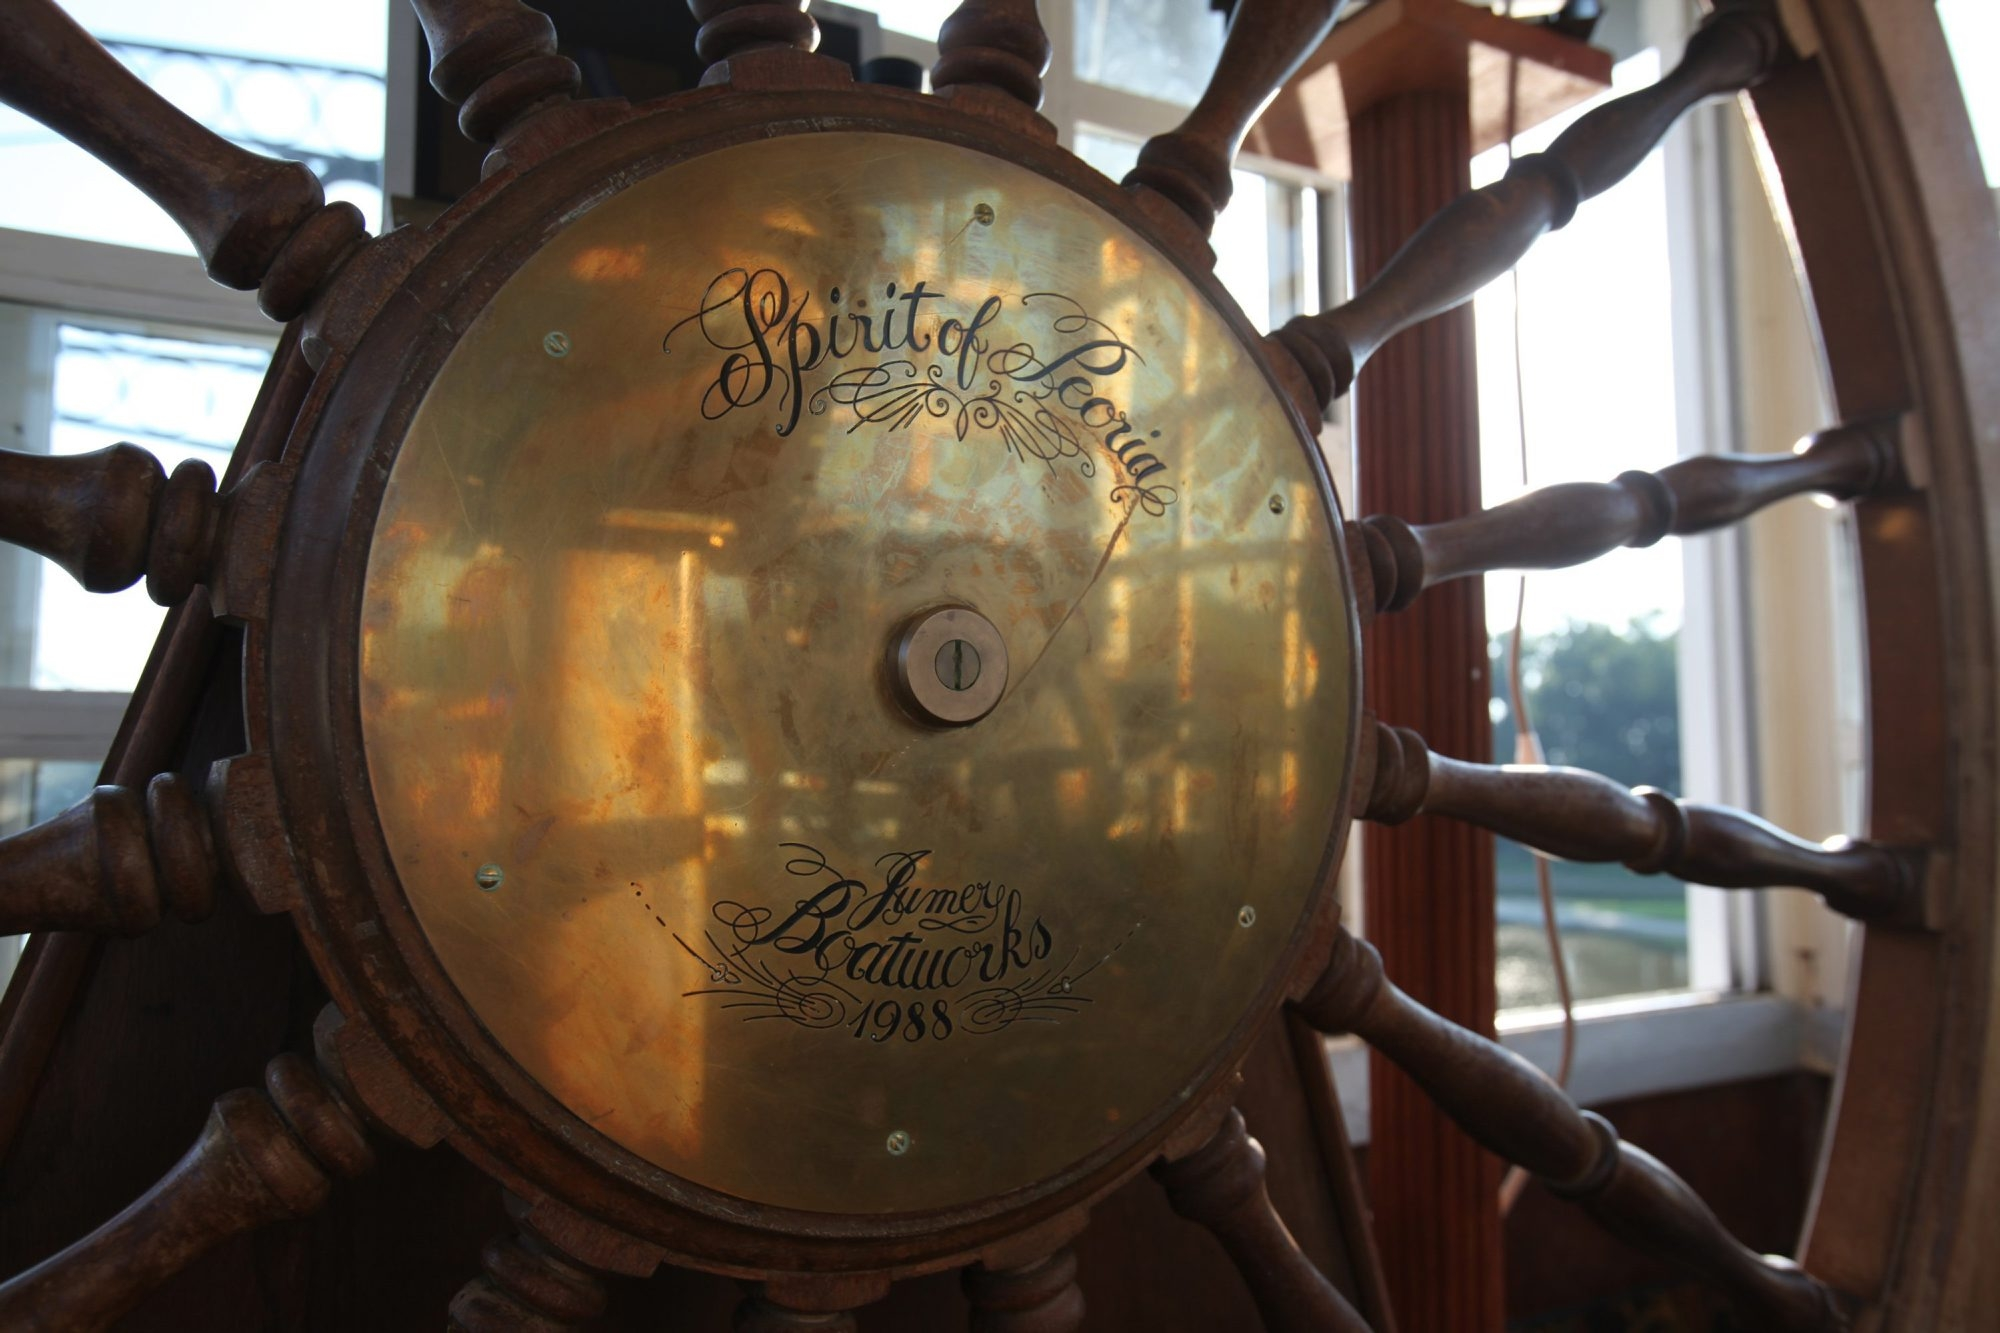 The helm is shown on the Peoria paddlewheel boat as it cruises down the Illinois river. (Josh Noel/Chicago Tribune/MCT)